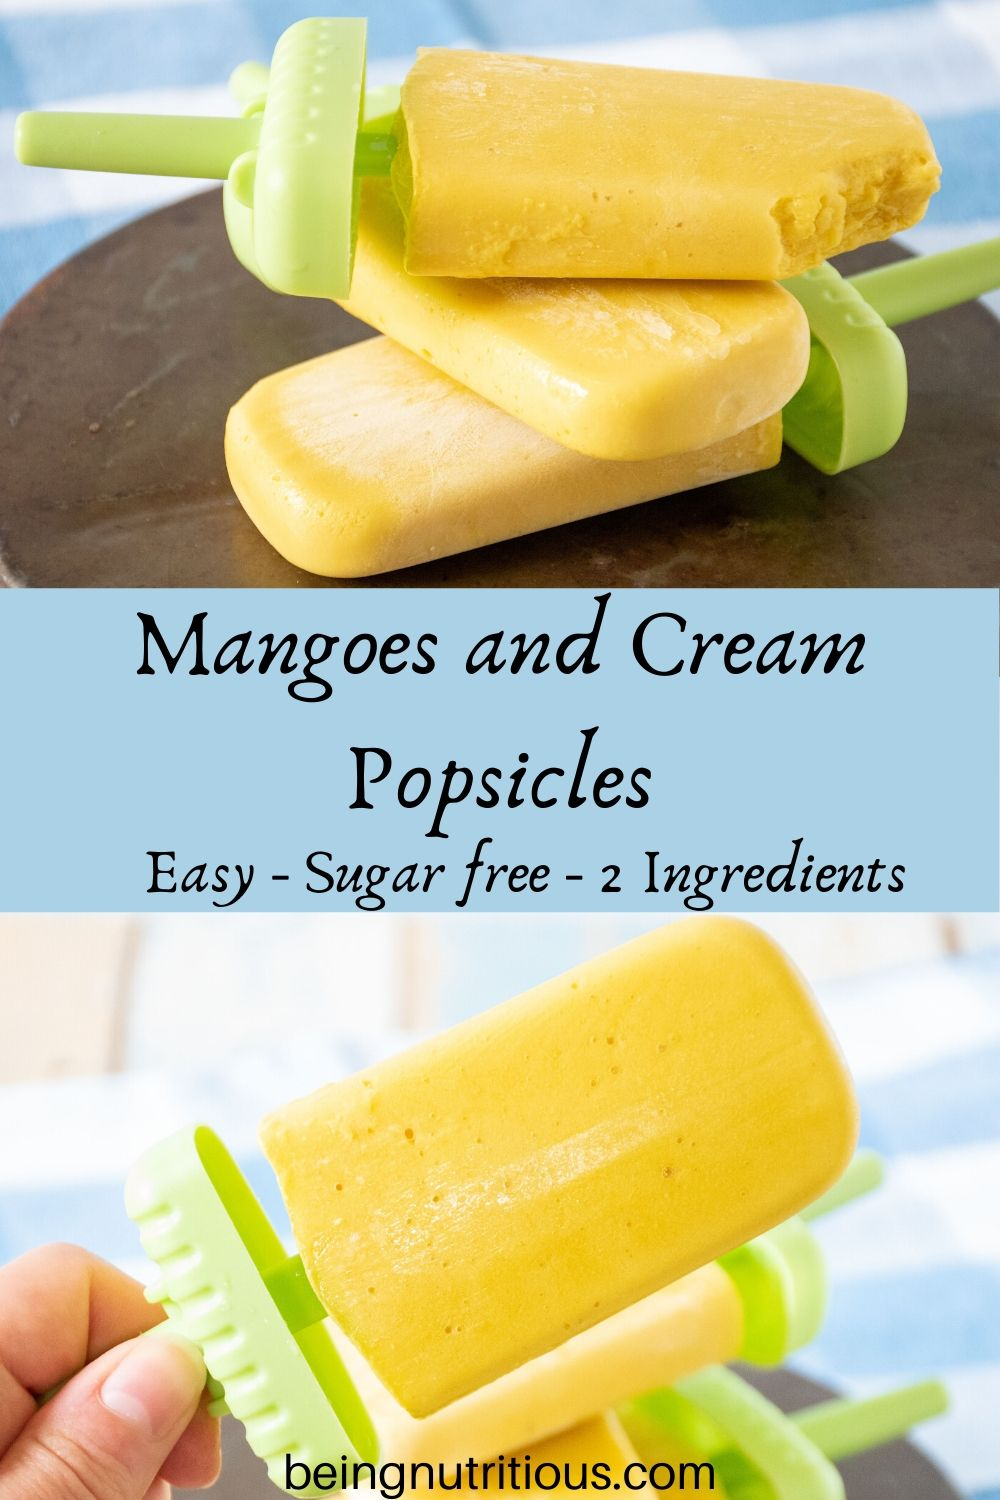 """Stacked photos - top image is 3 stacked popsicles with a bite out of the top one. Bottom image is a hand holding a popsicle. """"Mangoes and Cream Popsicles, easy, sugar free, 2 ingredients"""" appears between images"""